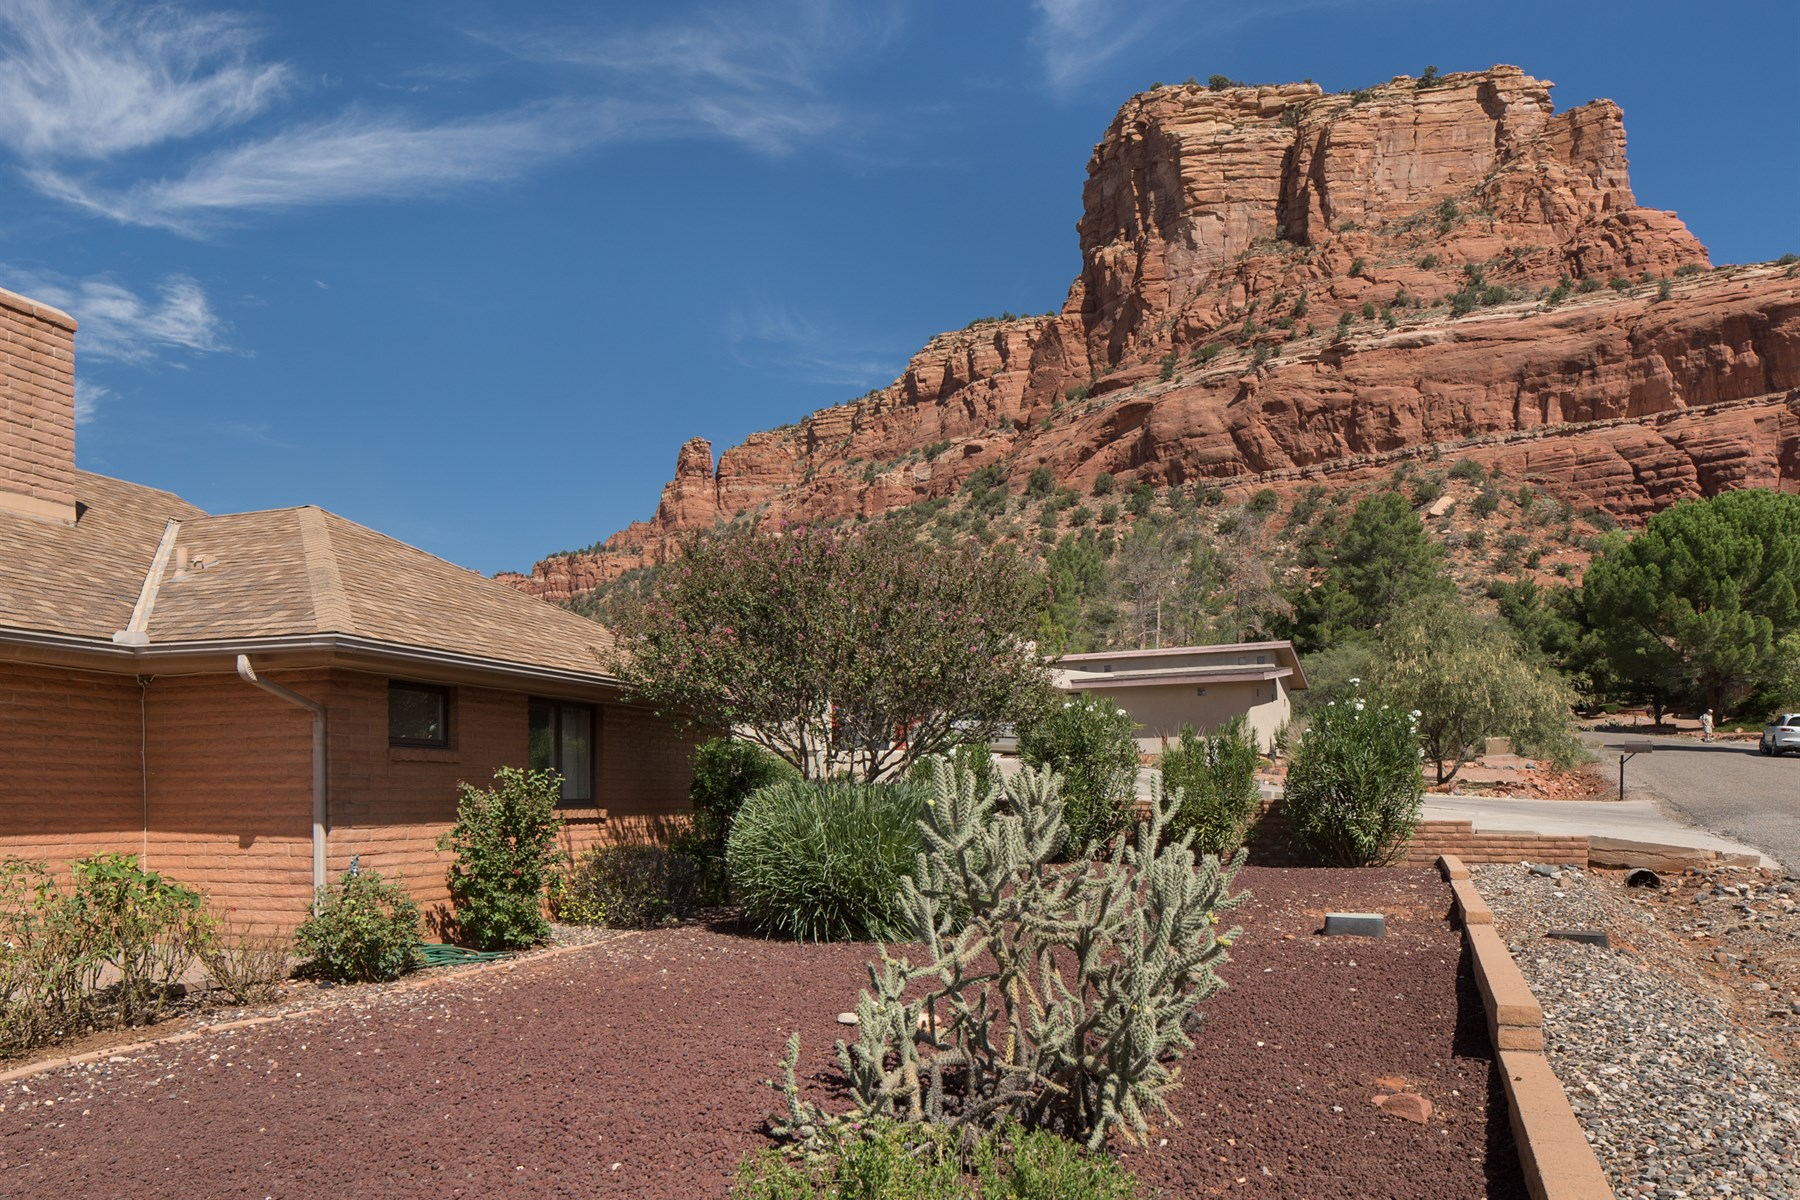 Casa Unifamiliar por un Venta en Charming single story home with amazing views 125 Courthouse Butte Rd Sedona, Arizona, 86351 Estados Unidos